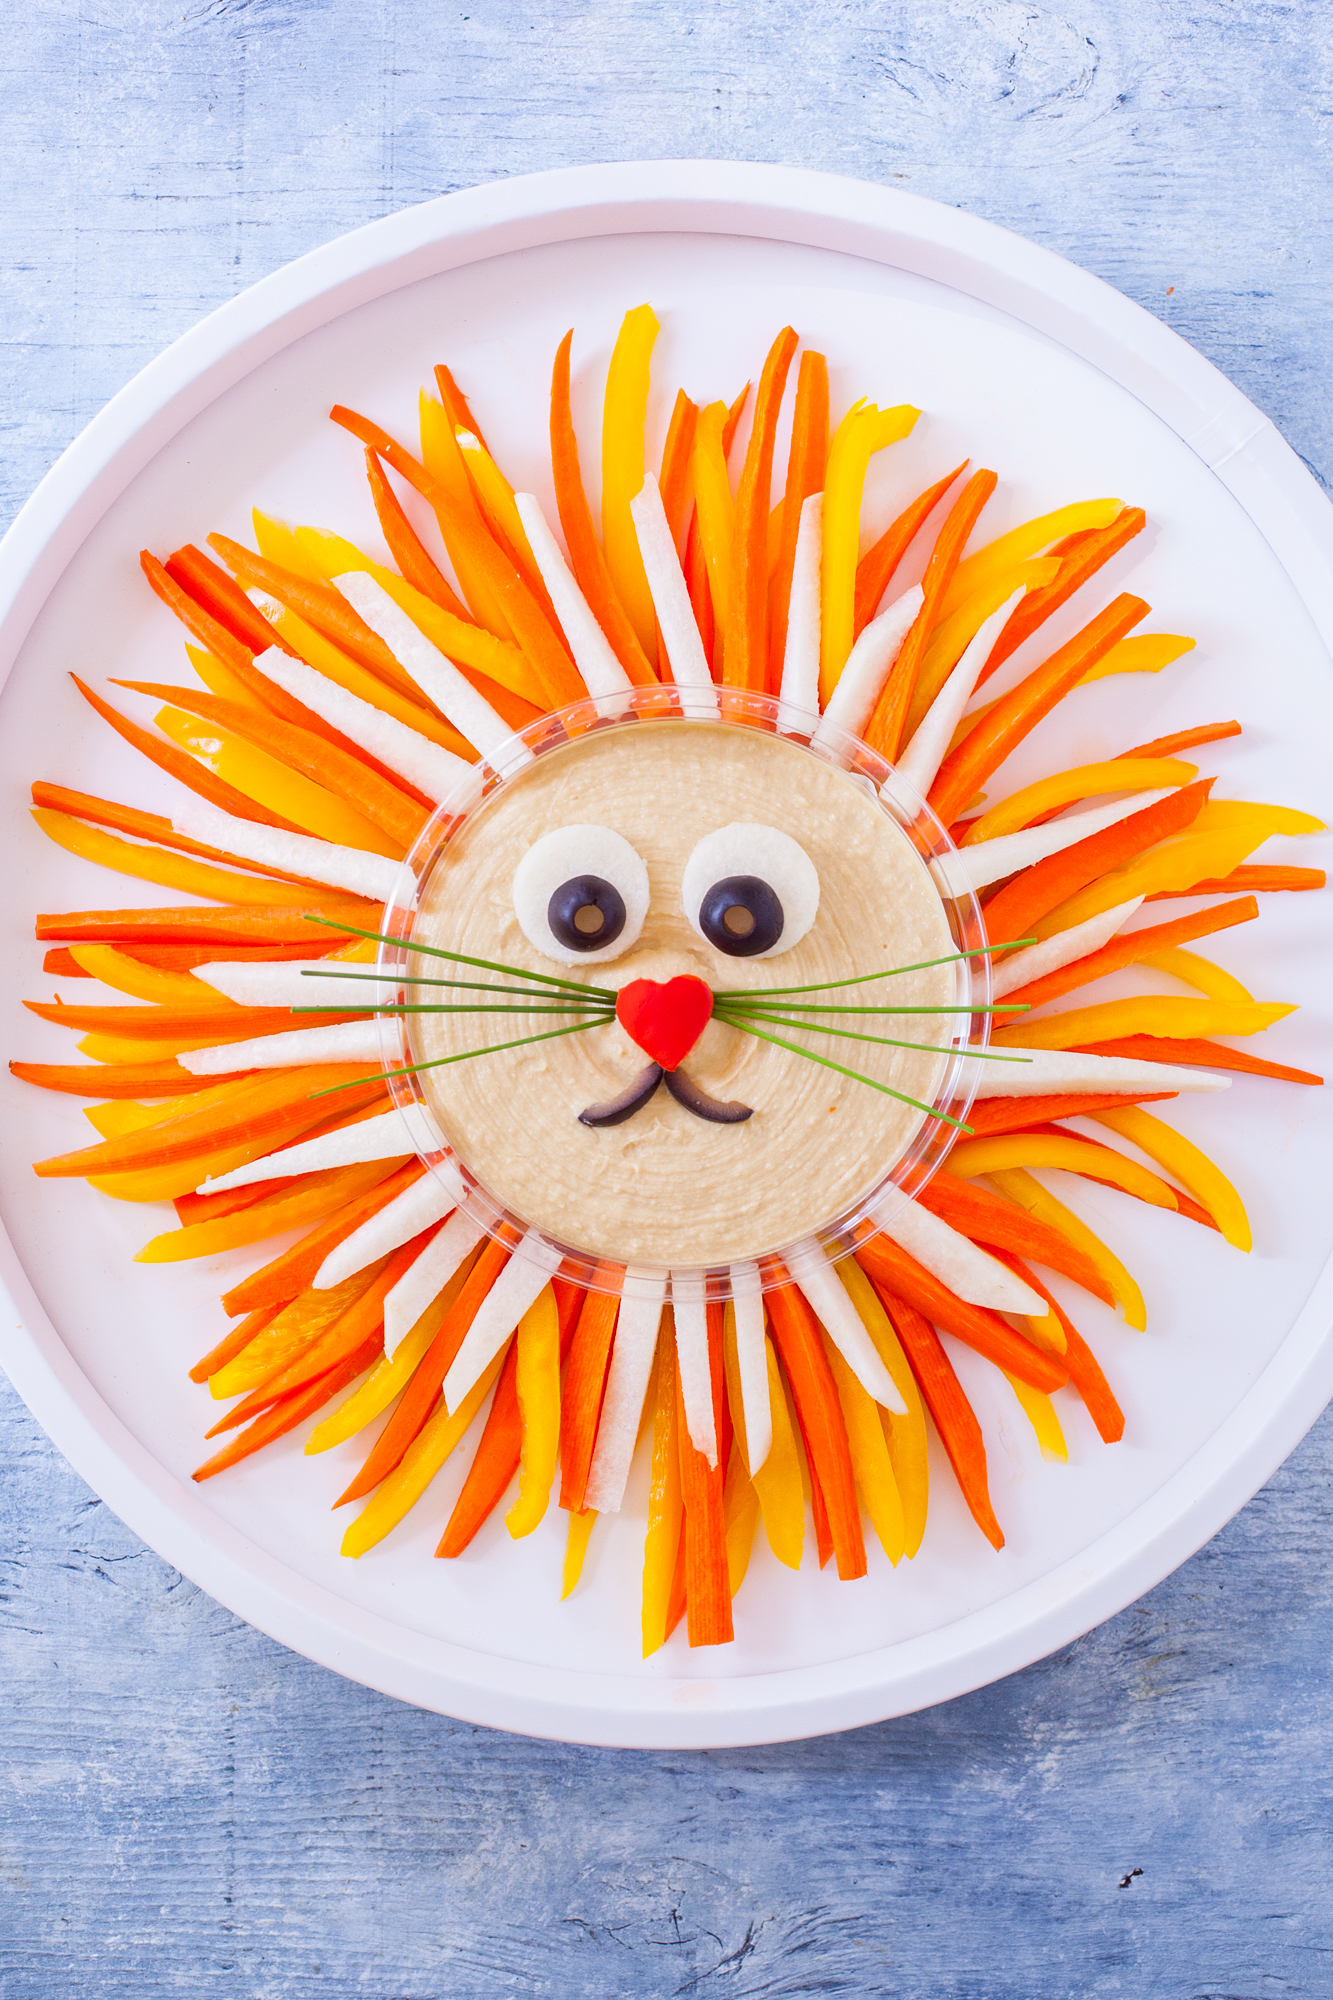 Lion Vegetable Tray Is Irresistible To Kids Eating Richly